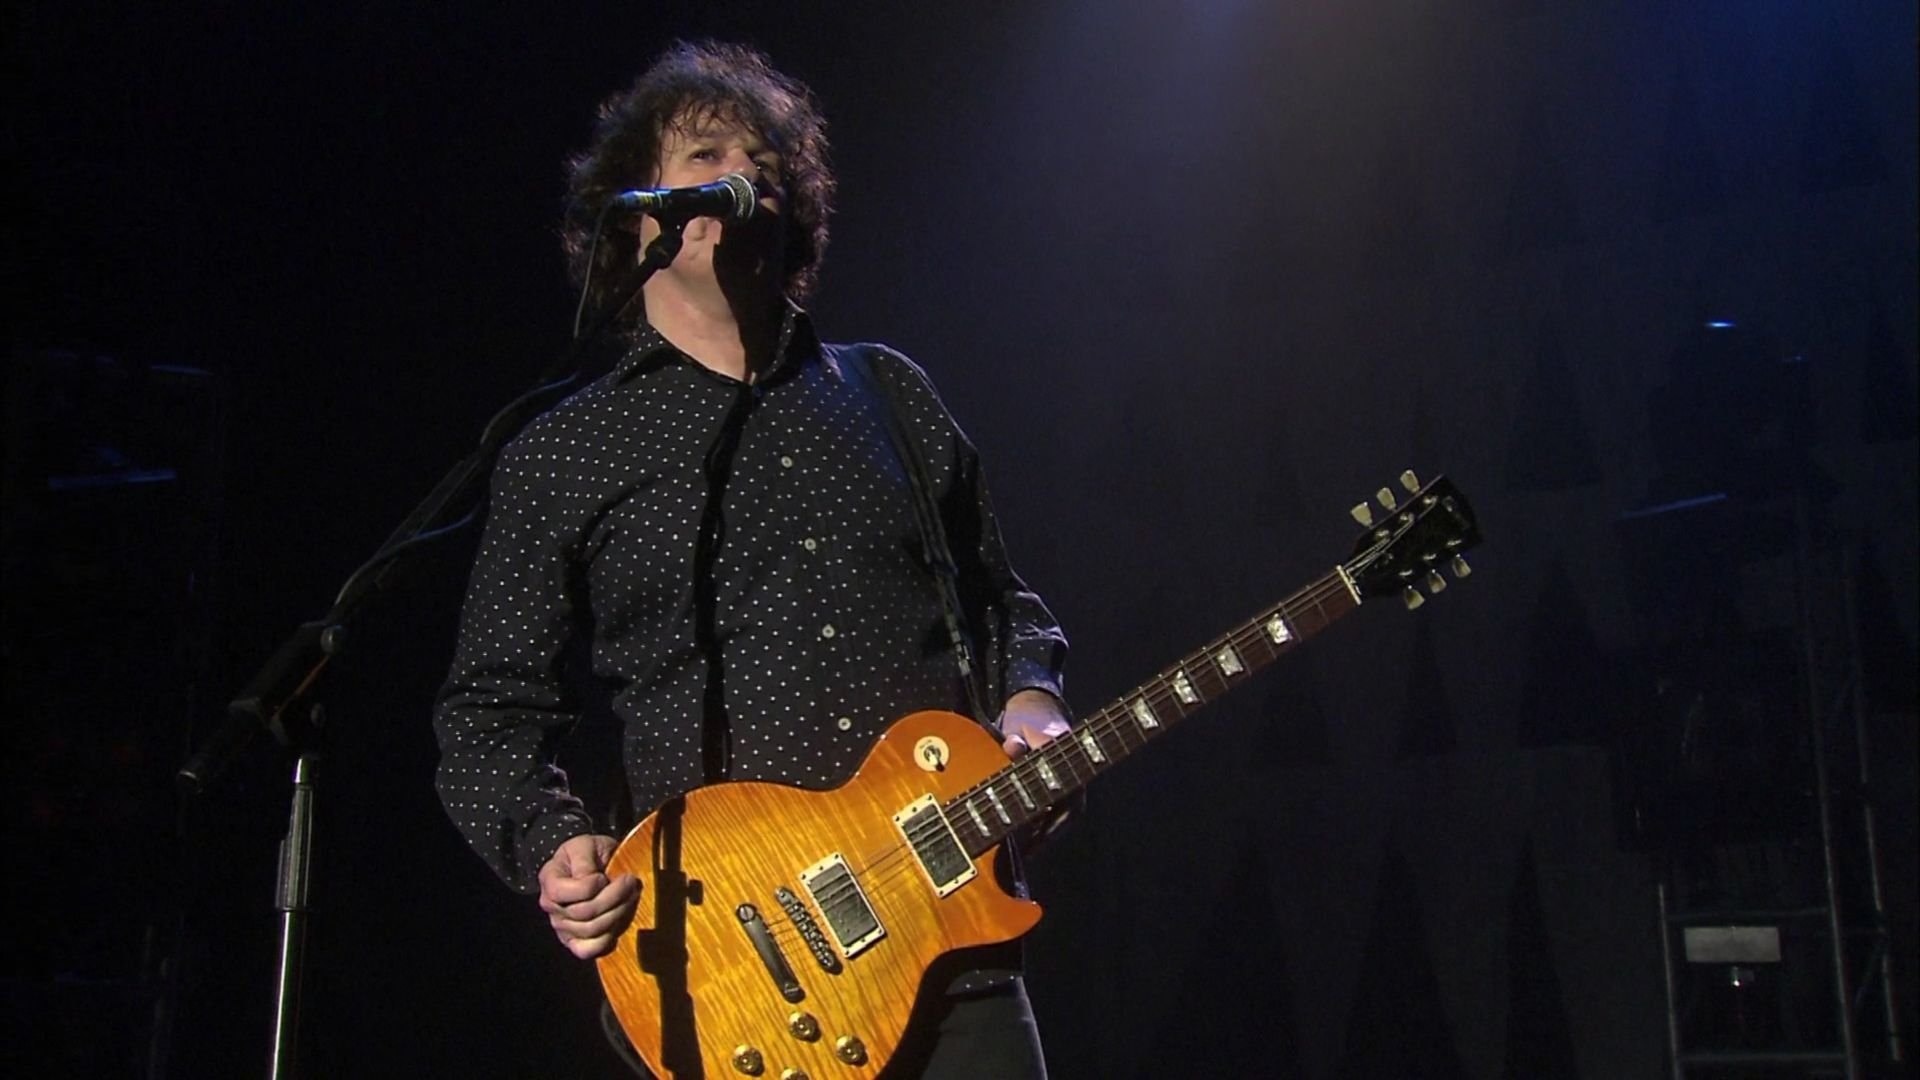 Iphone 8 Plus X Ray Wallpaper Gary Moore Full Hd Wallpaper And Background Image